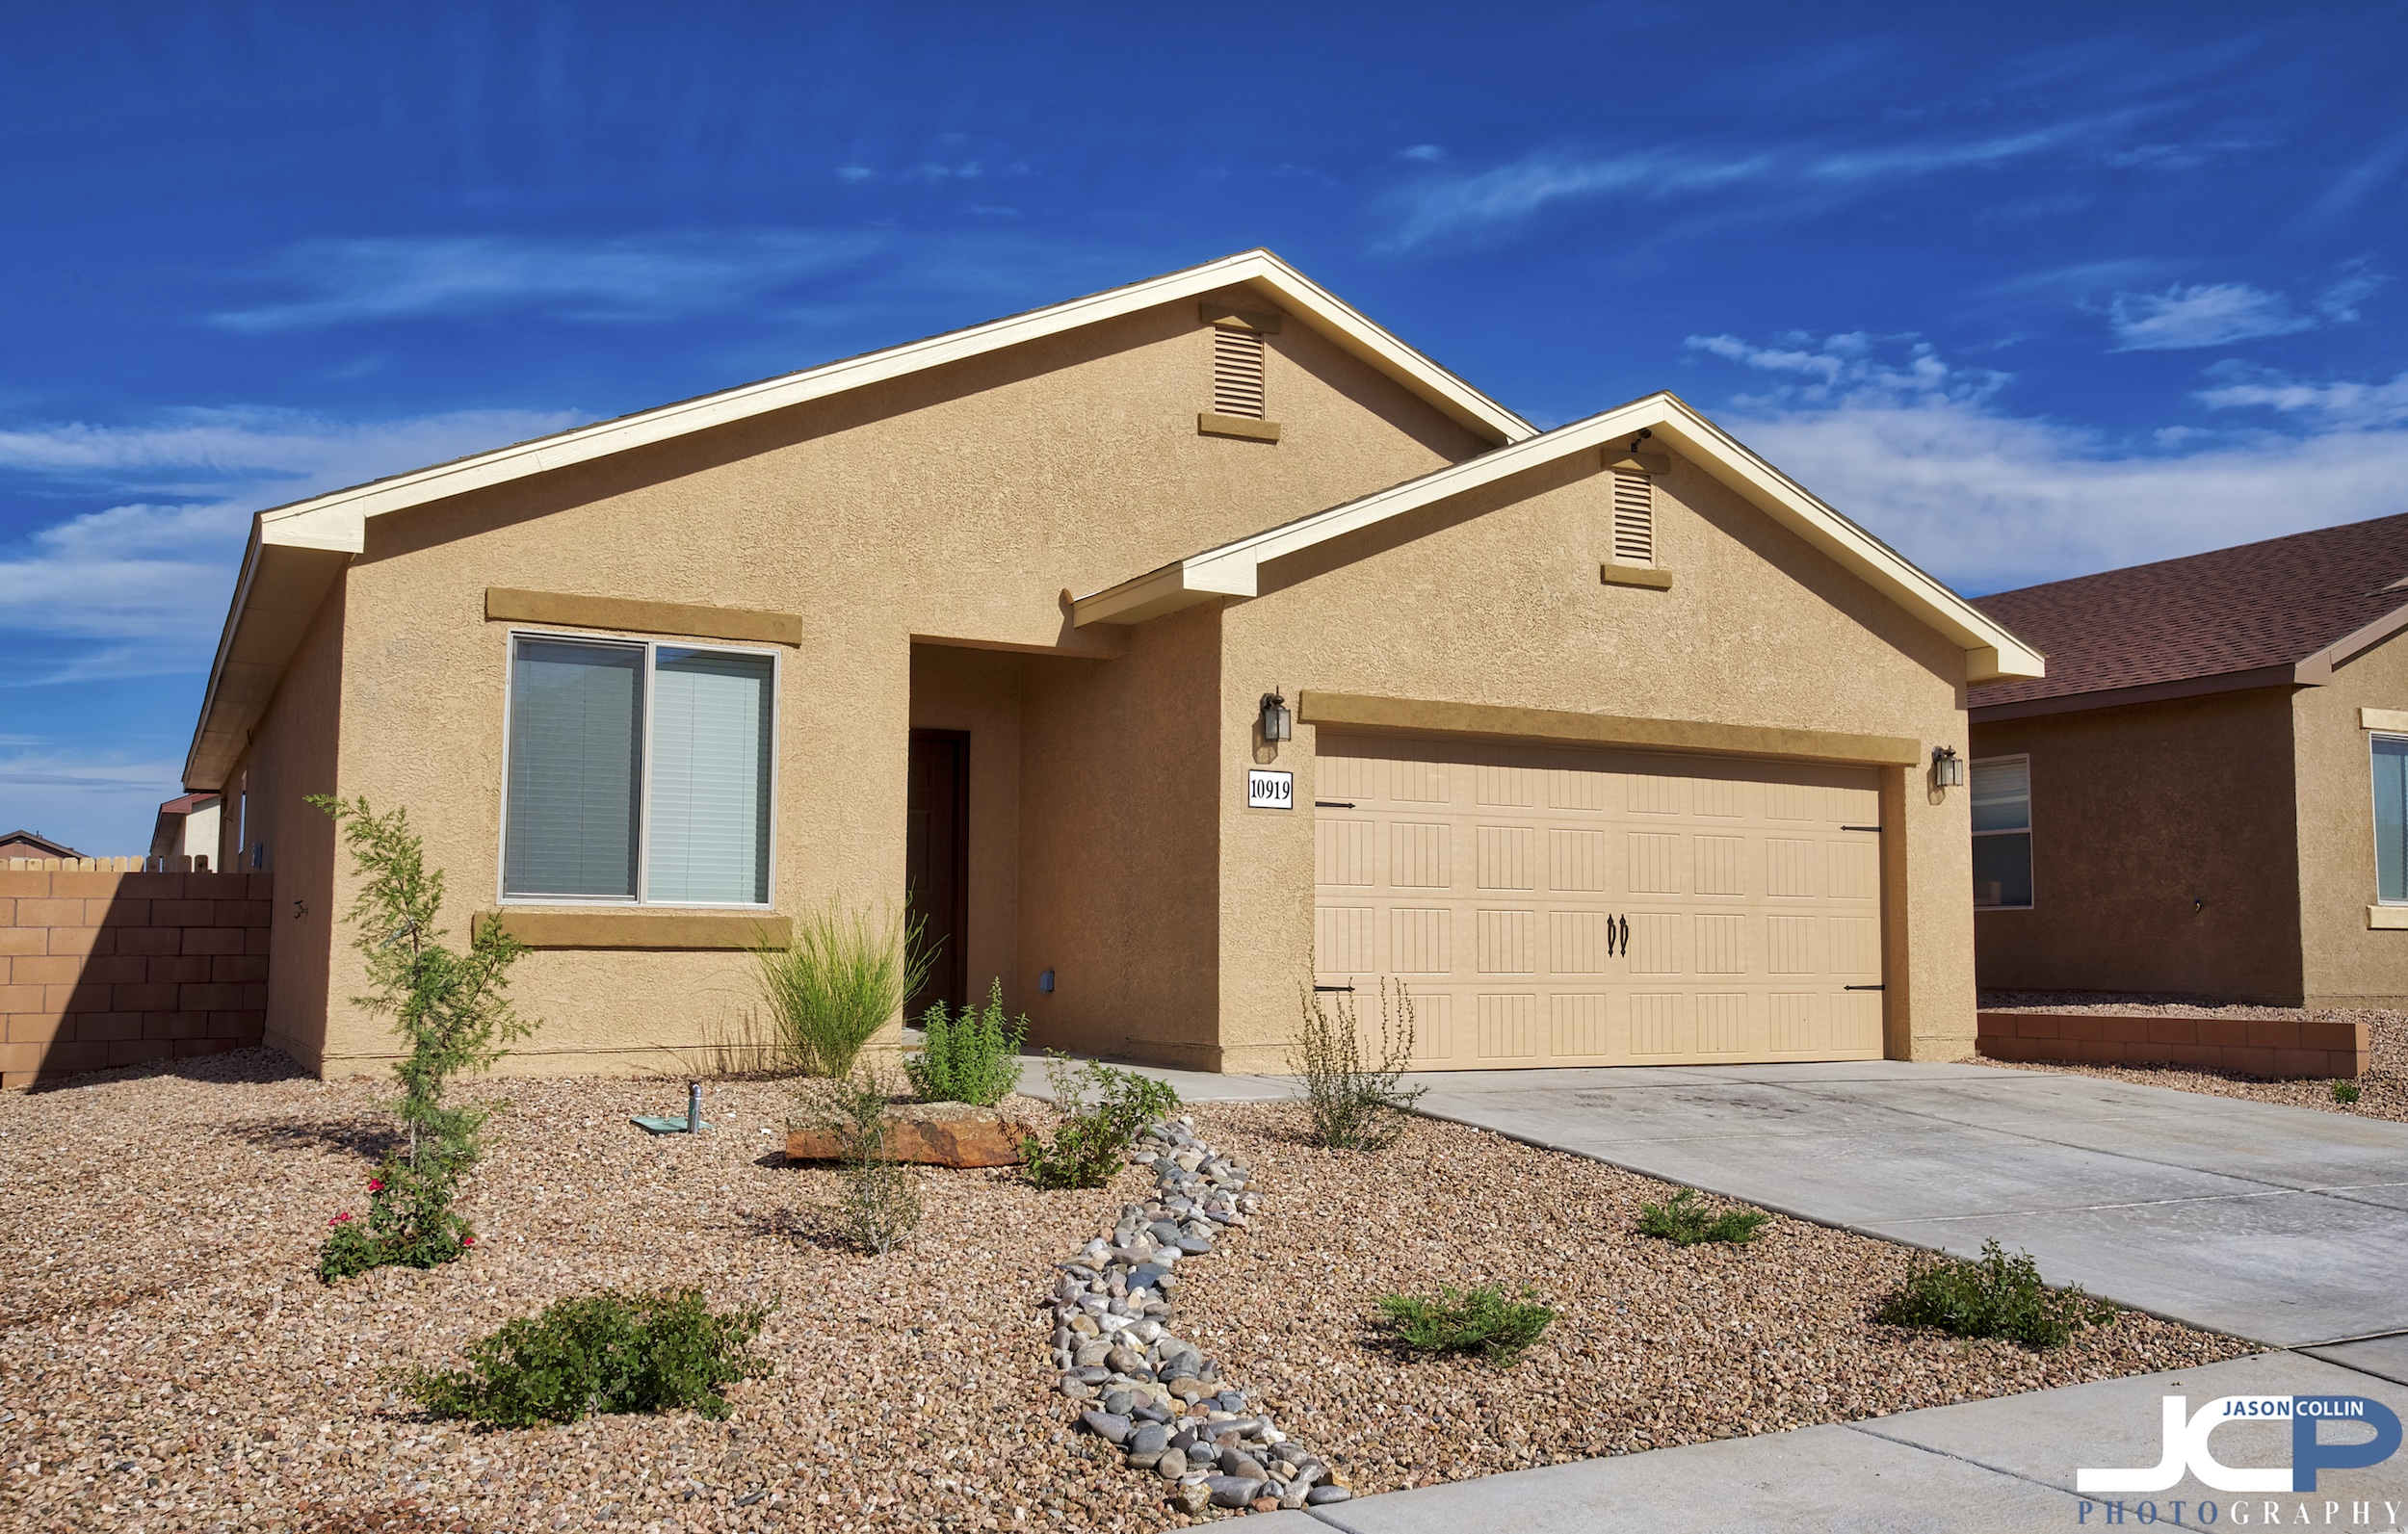 A home I photographed in Rio Rancho using realistic HDR for the main MLS photo